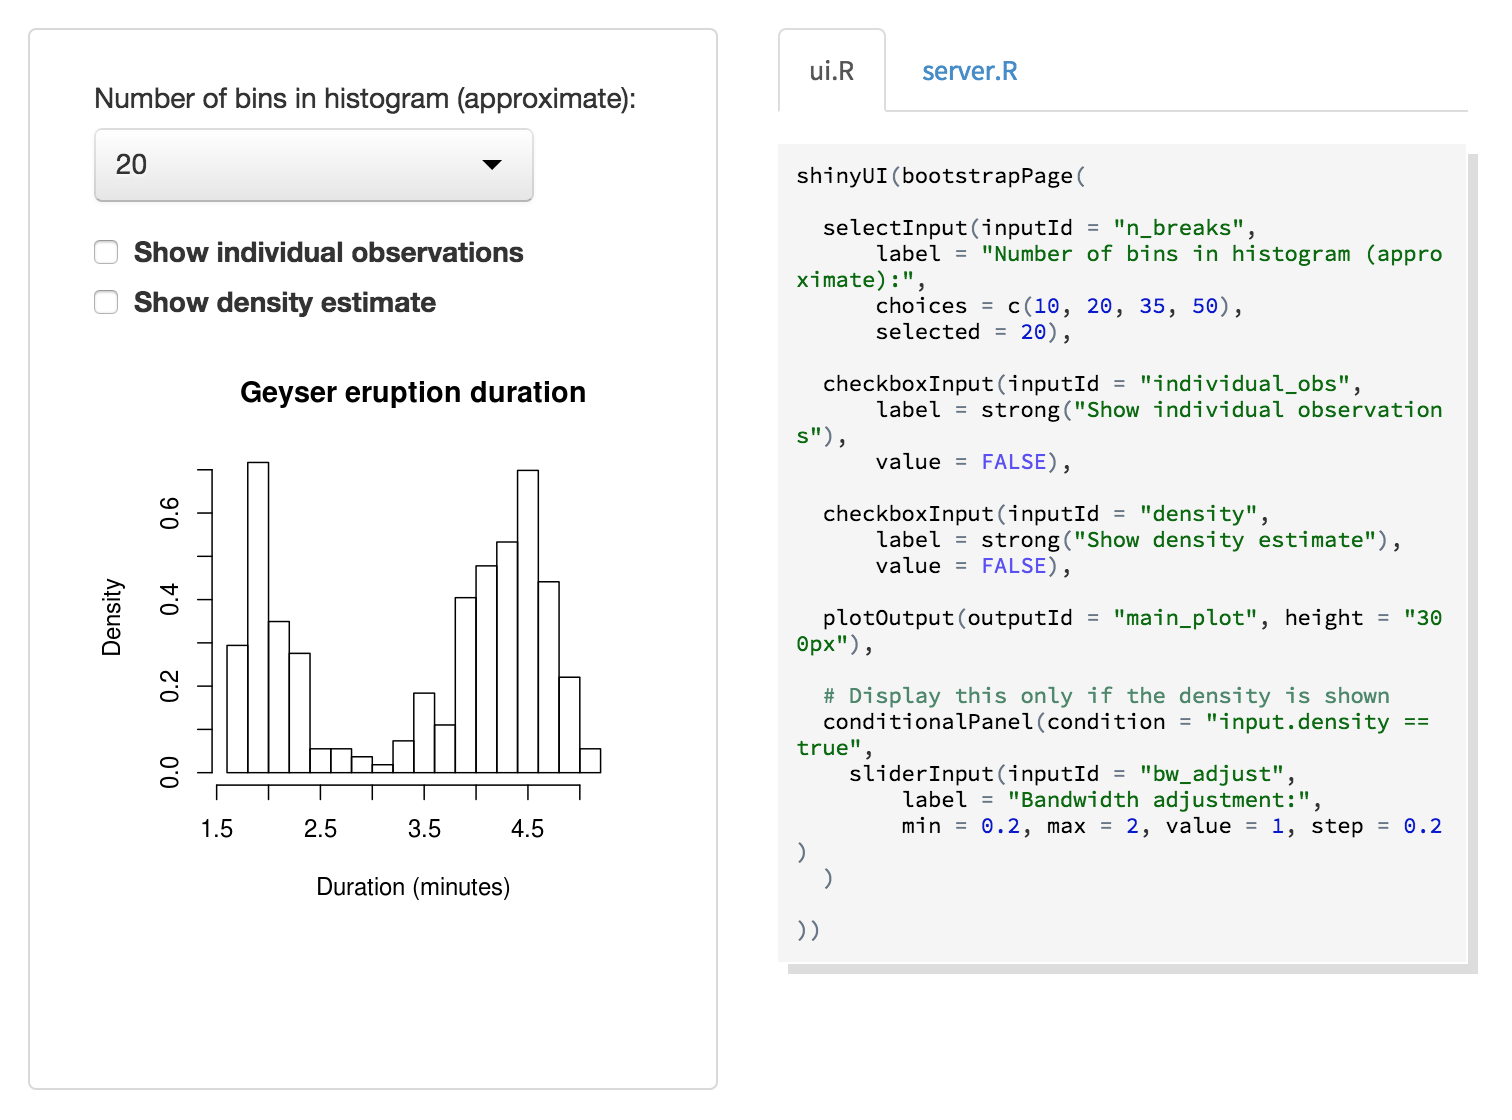 Keeping Up With R - Us map usigng gvisintensitymap example